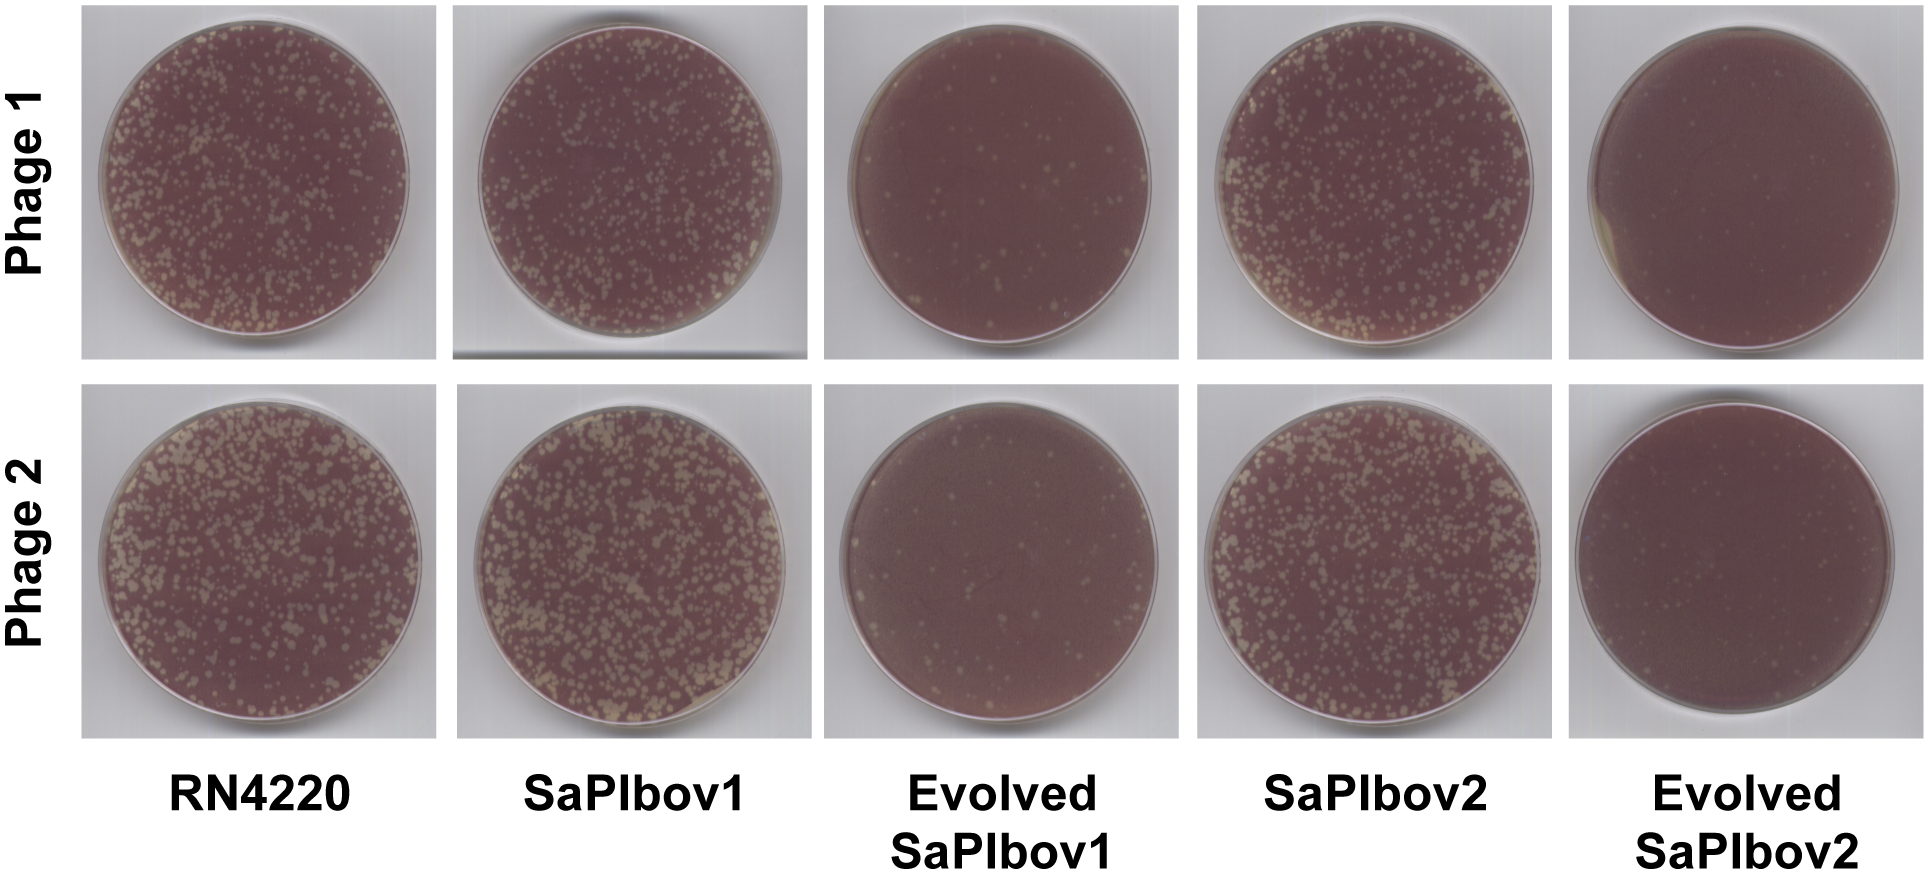 SaPI-driven phage evolution occurs <i>in vivo</i>.